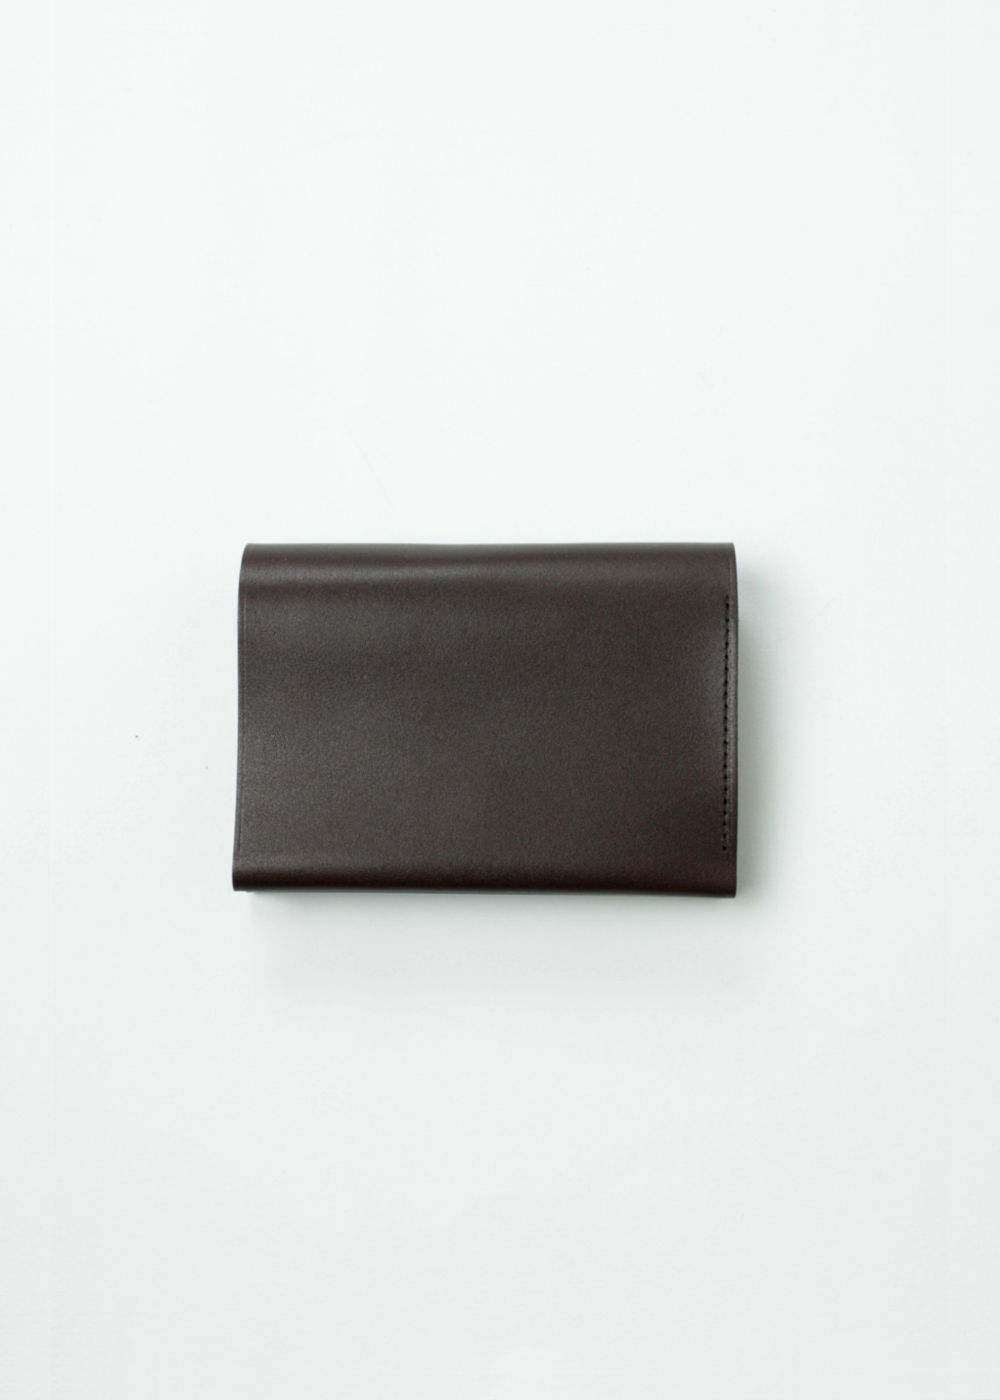 Postalco-Pressed-Cotton-Card-&-Coin-Wallet-OliveGreen-01